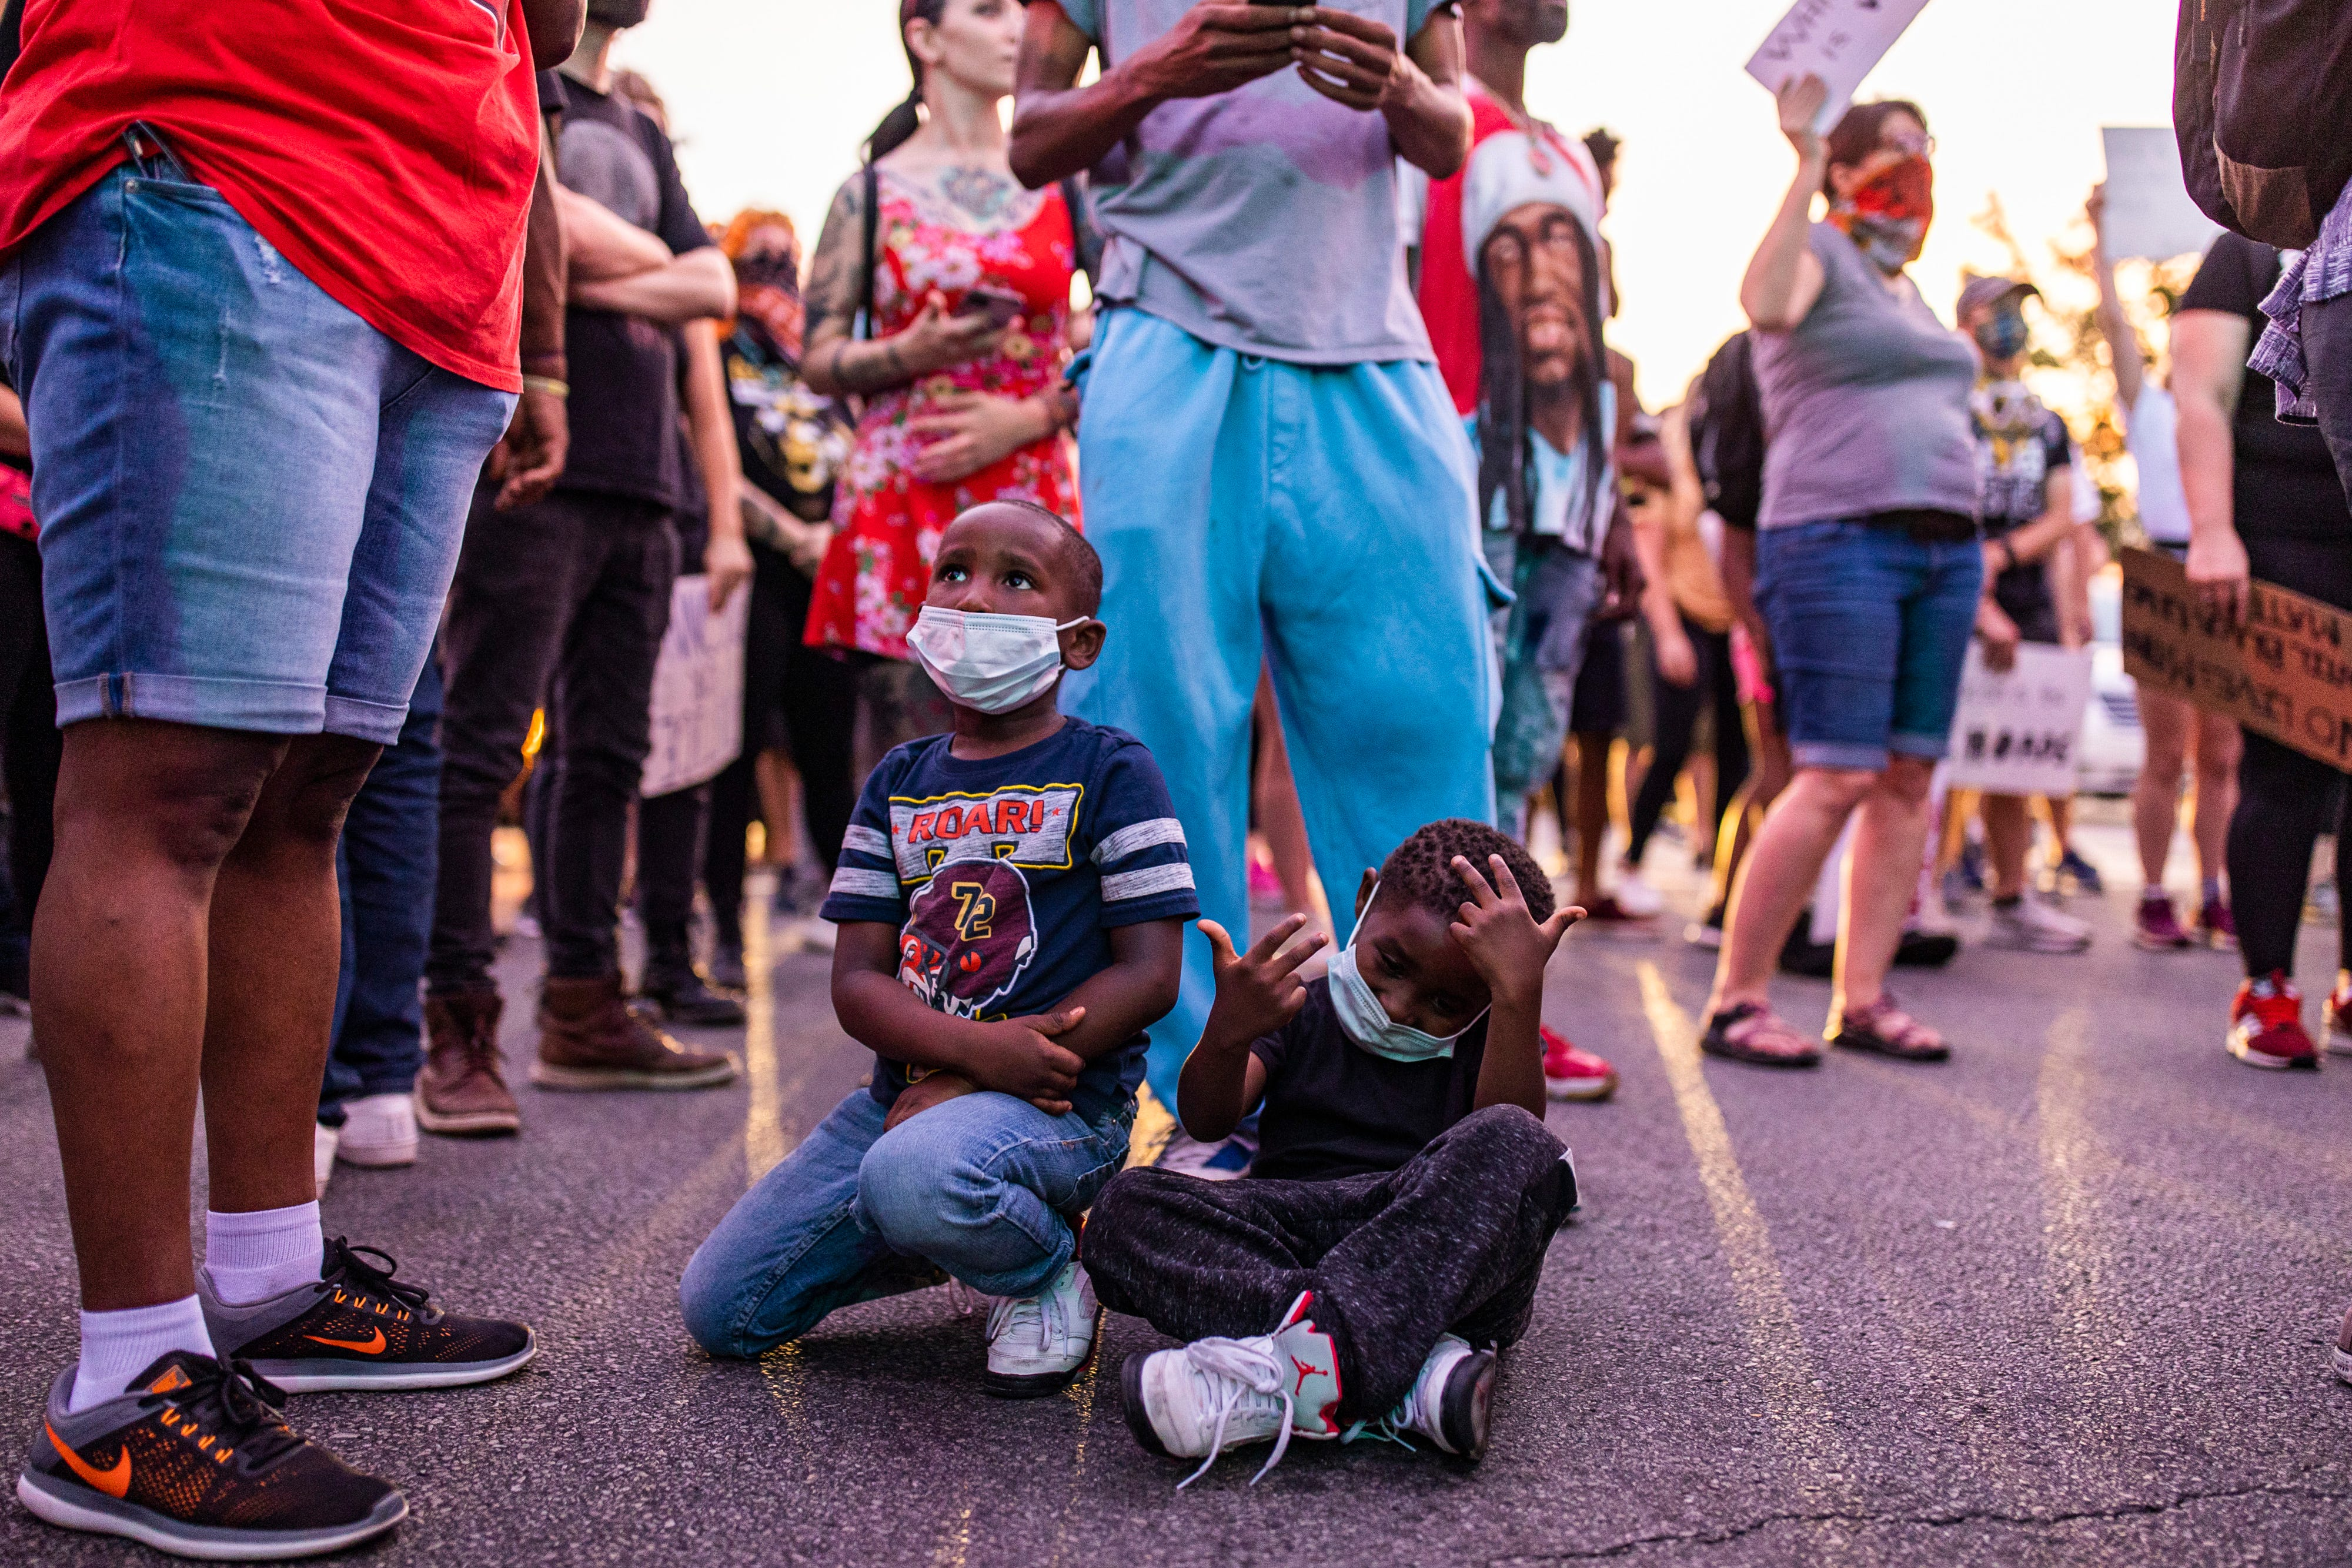 This is for you, baby : 22 days of protests are about more than Breonna Taylor